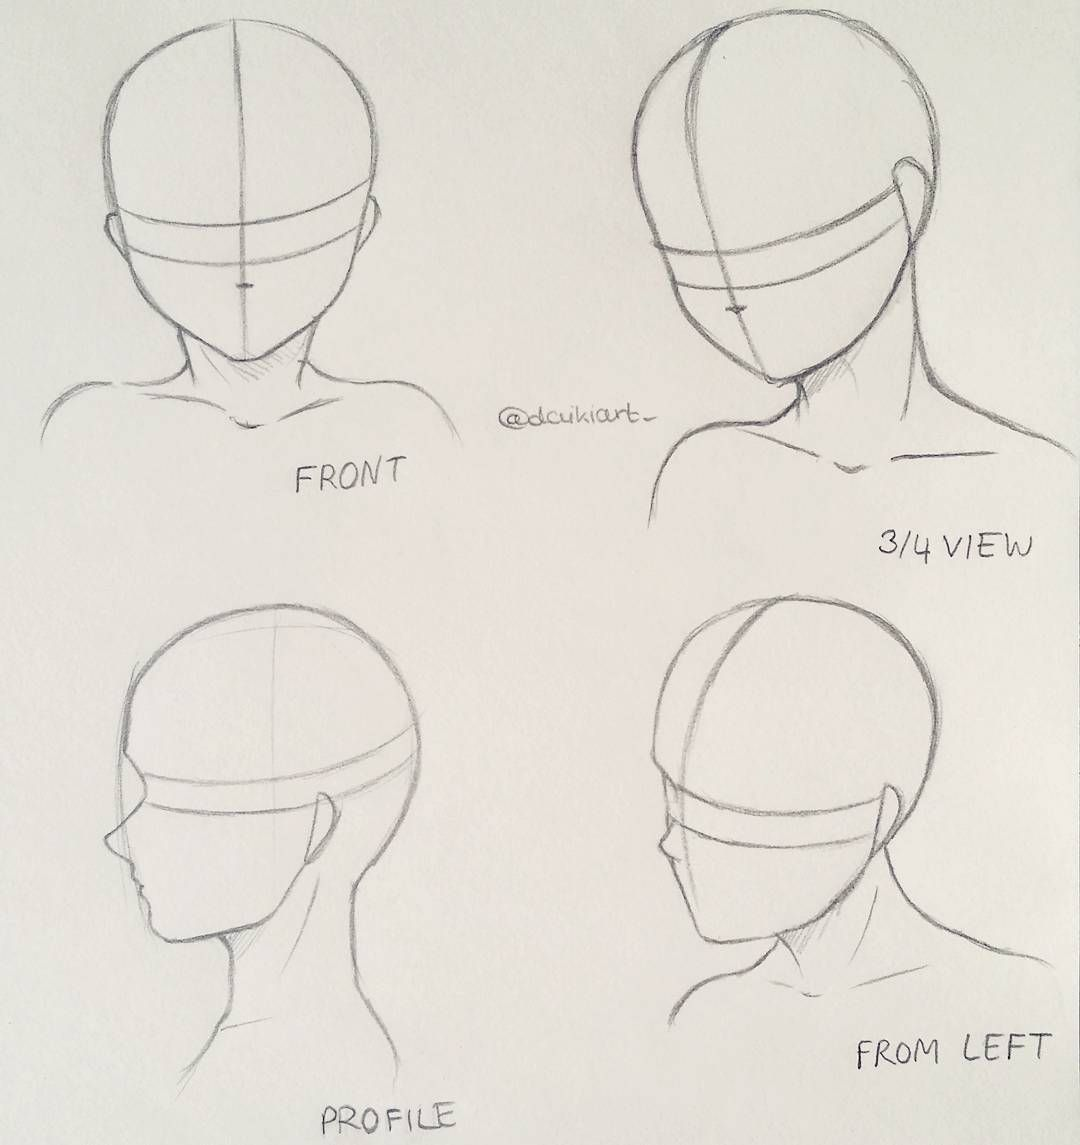 How To Draw Different Head Poses Maybe This Tutorial Helps A Bit Manga Anime Doodle Illustration Mangad Anime Drawings Tutorials Drawing Heads Anime Head